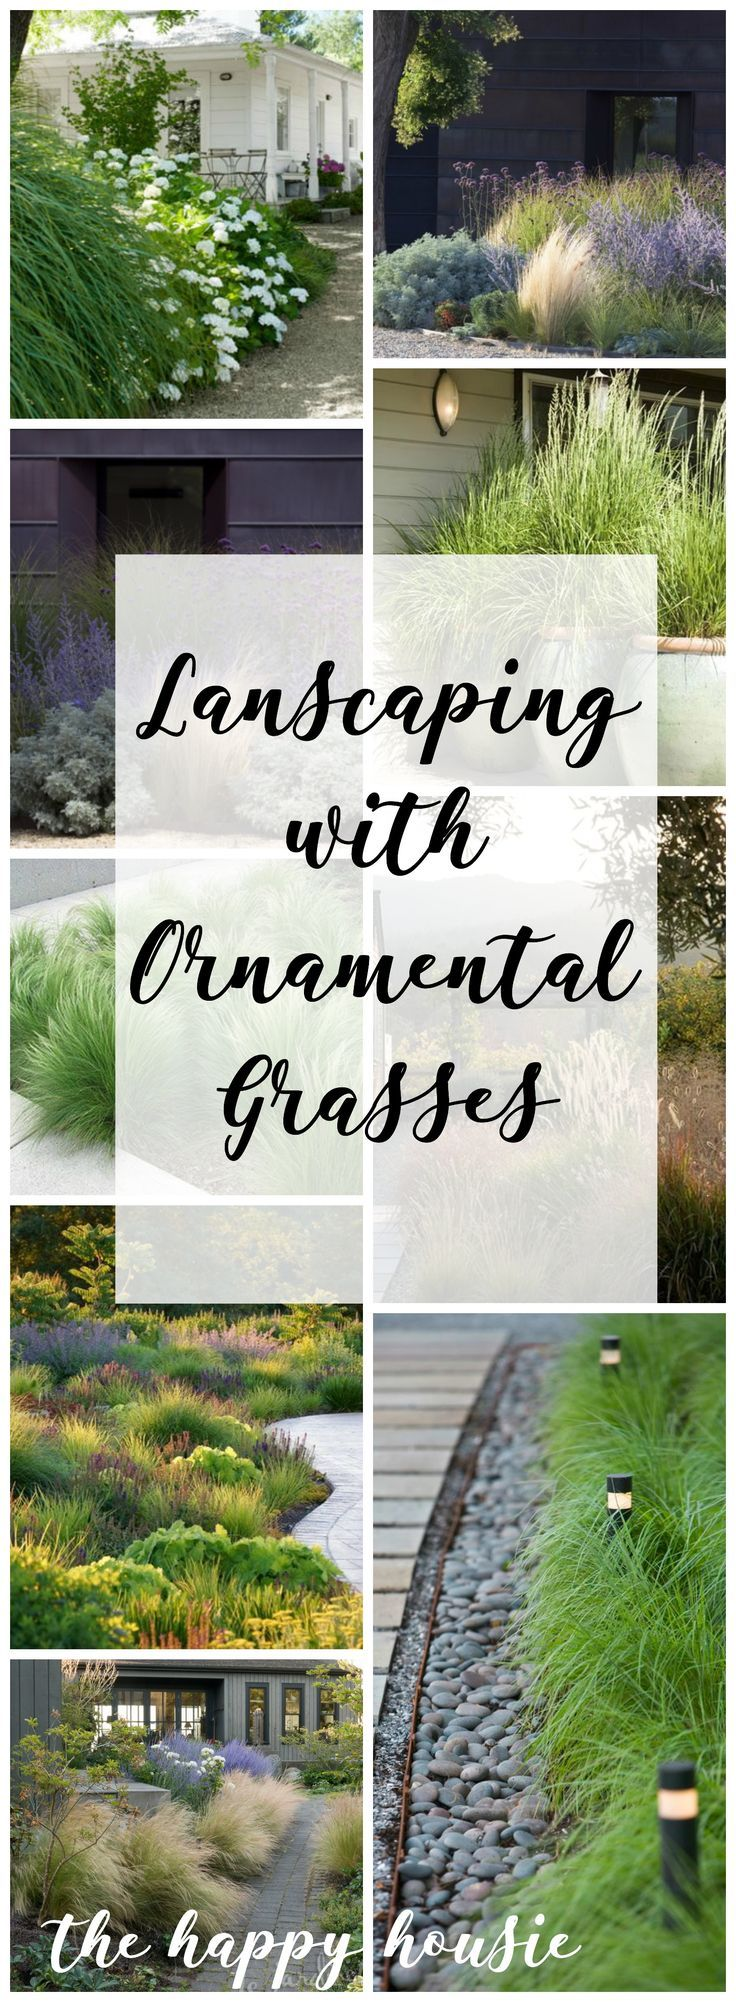 58 best Grasses images on Pinterest | Garden ideas, Yard ideas and ...